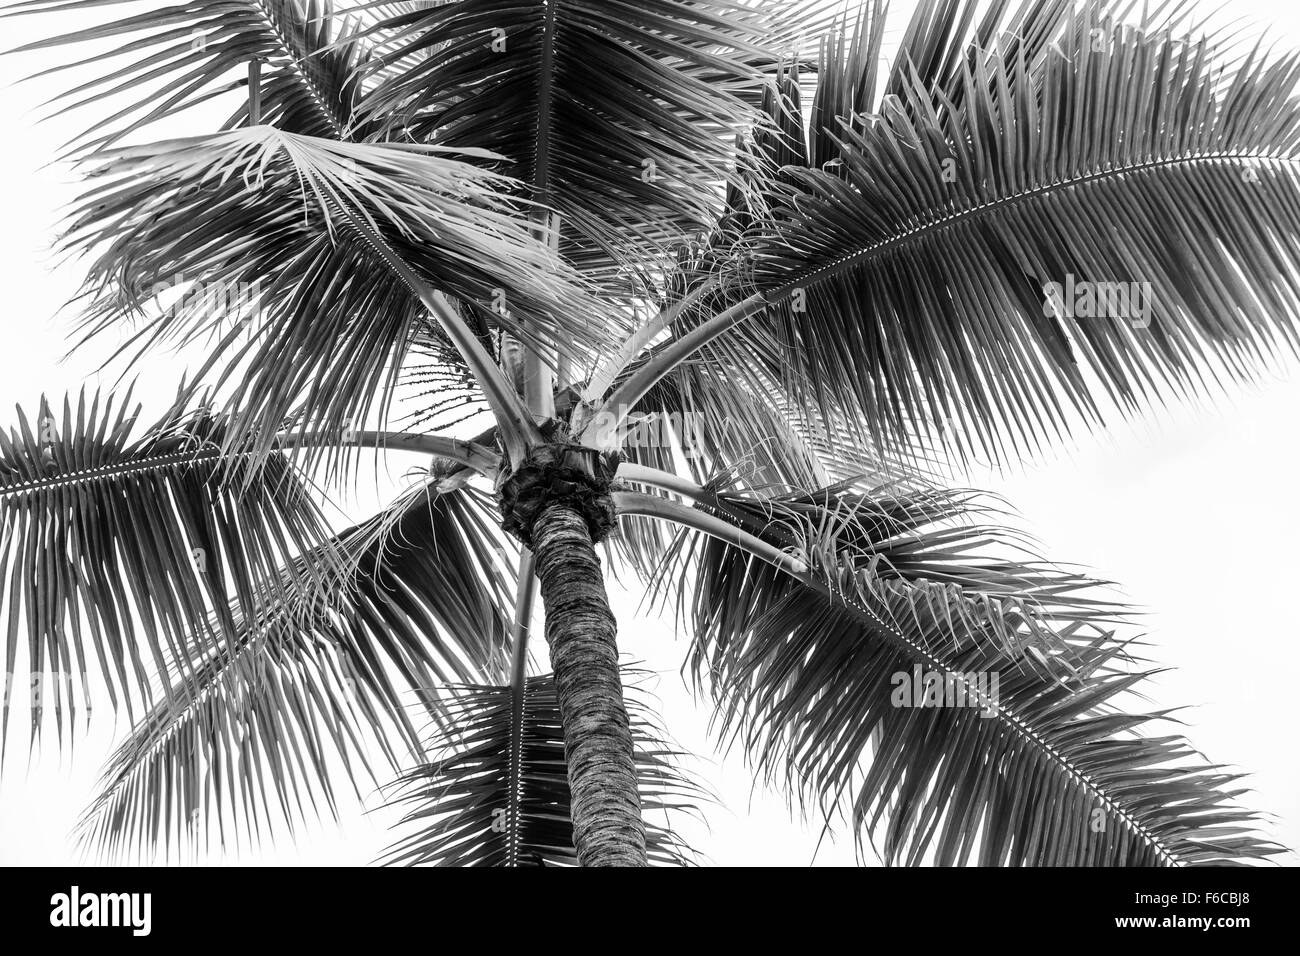 Top of palm tree on cloudy sky background in black and white - Stock Image